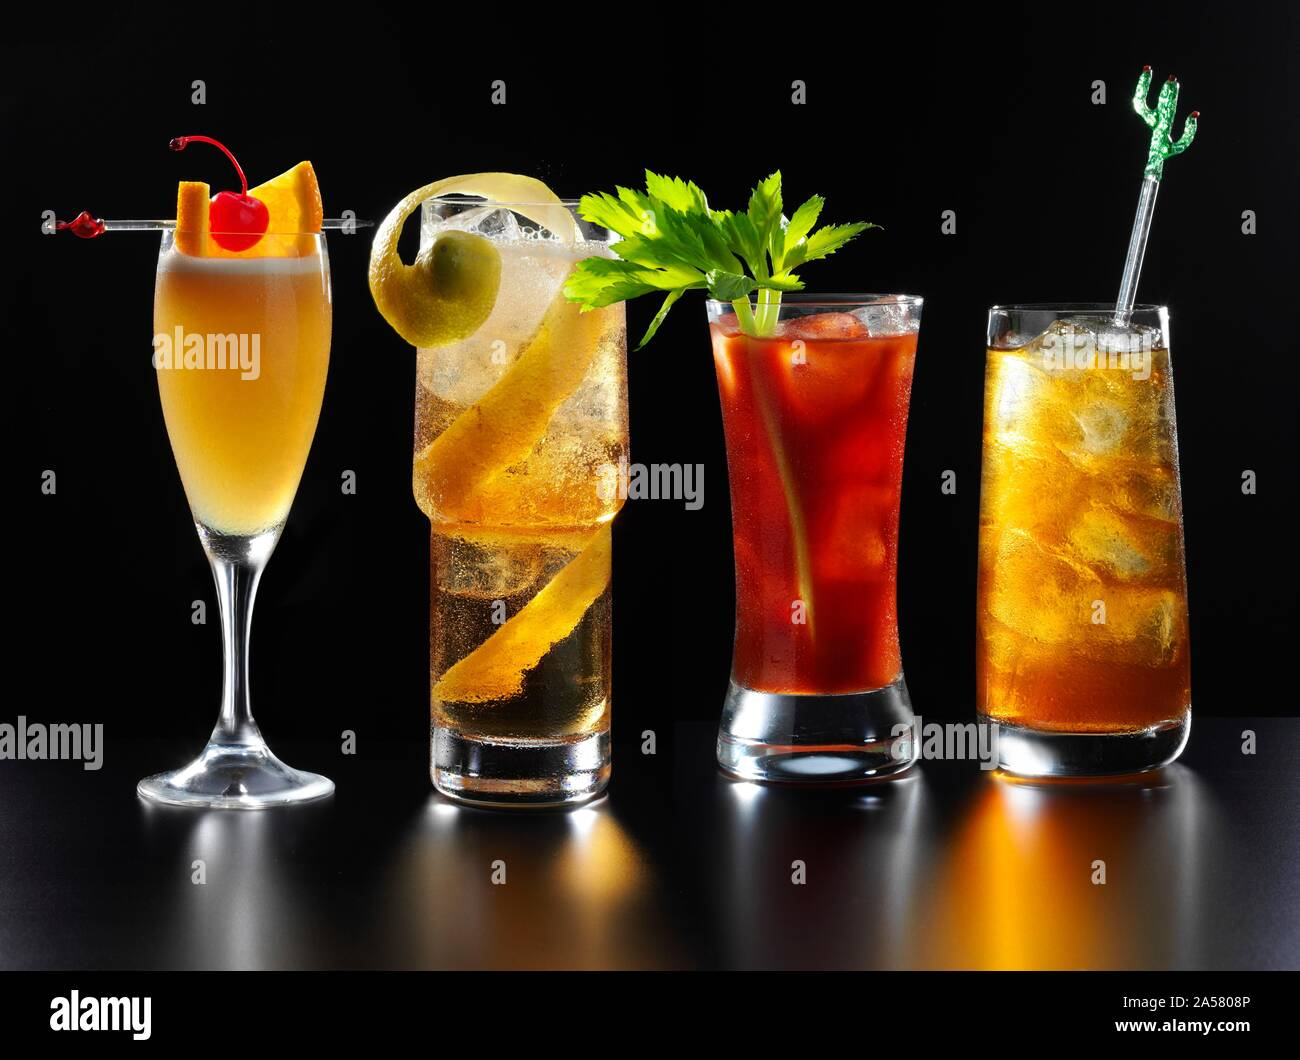 Four different fruity cocktails, black background, Germany Stock Photo